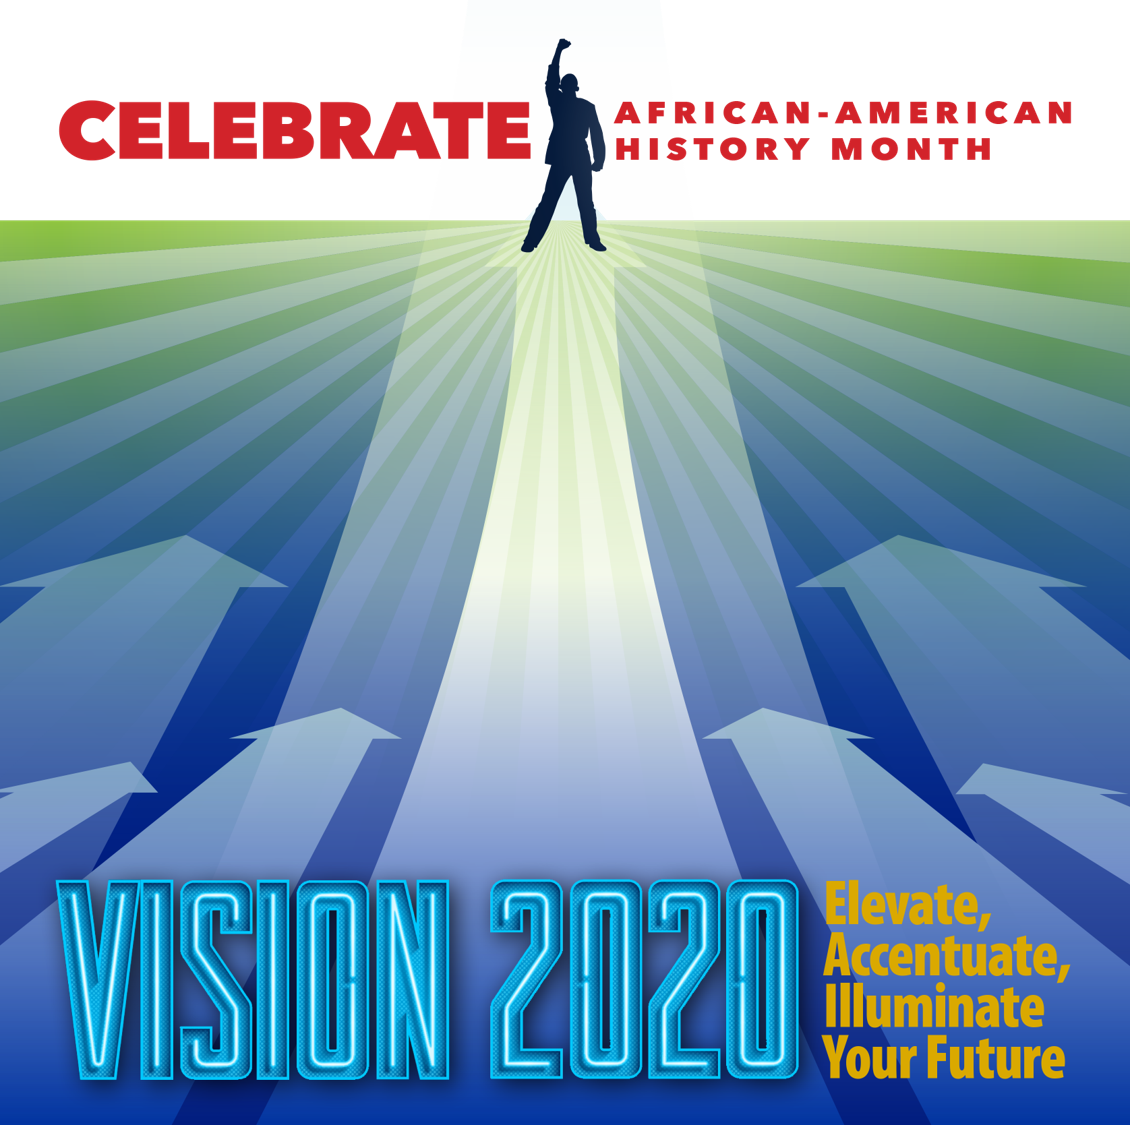 Celebrate African-American History Month. Vistion 2020: Elevate, Accentuate, Illuminate Your Future